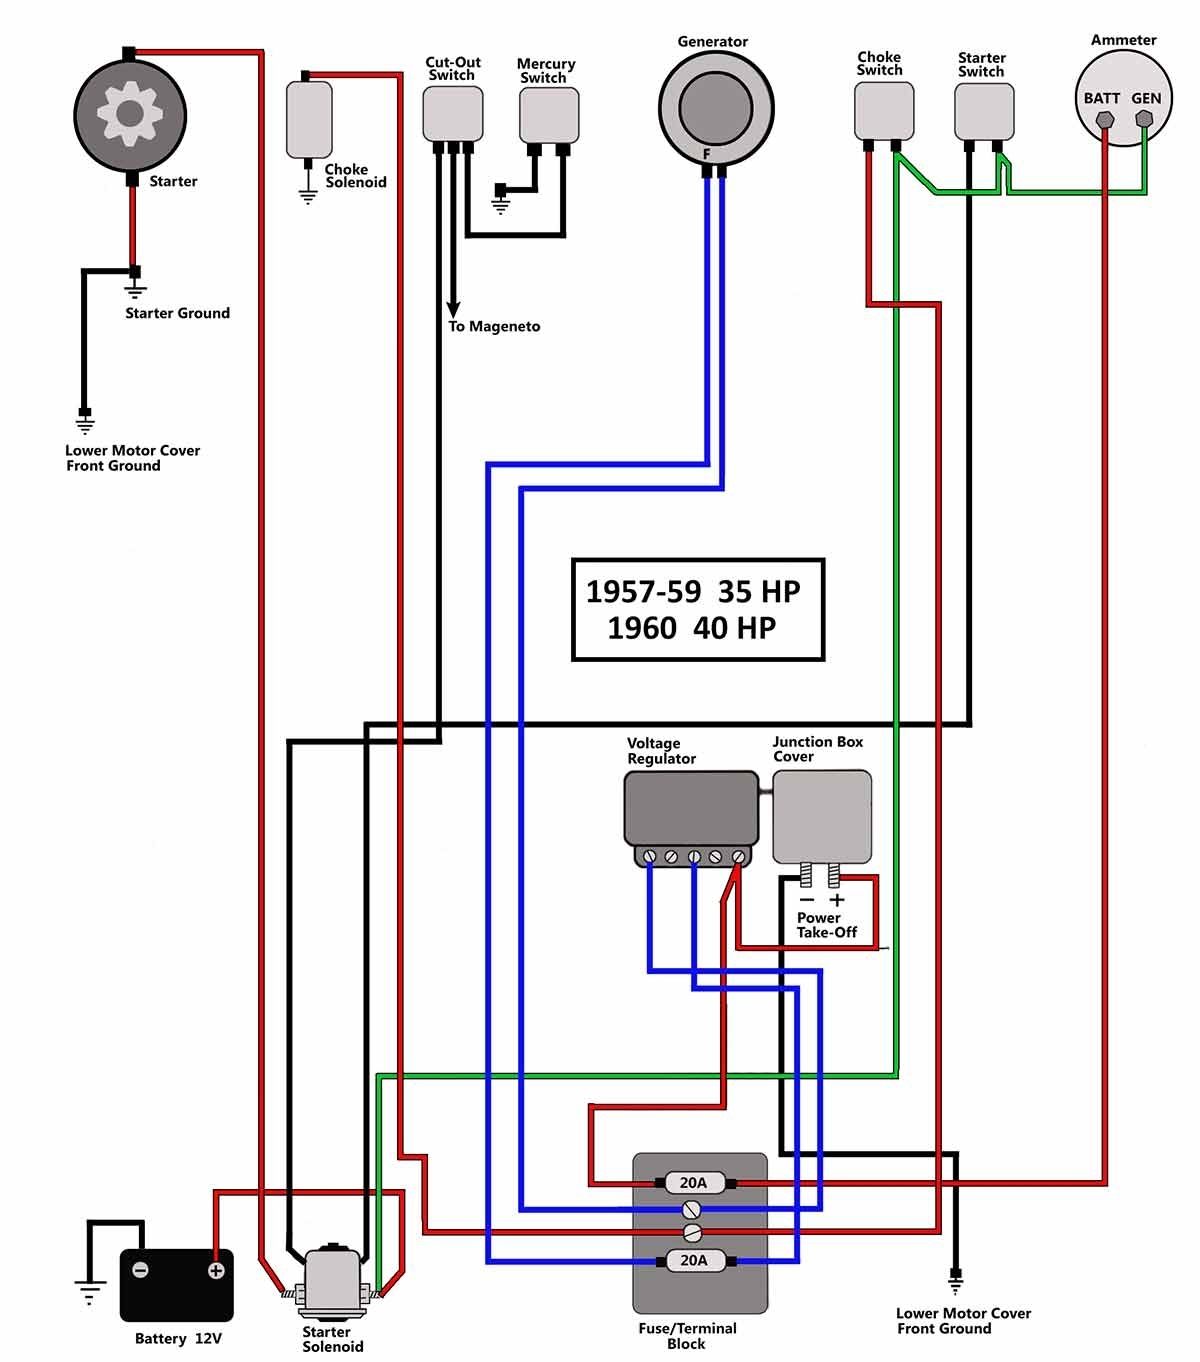 vdo gauges wiring diagrams and boat tach diagram e z go golf cart for boat gauge wiring diagram for tachometer vdo wiring diagram diagram vdo wiring siemens 5wk9628 \u2022 free golf cart battery meter wiring diagram at nearapp.co